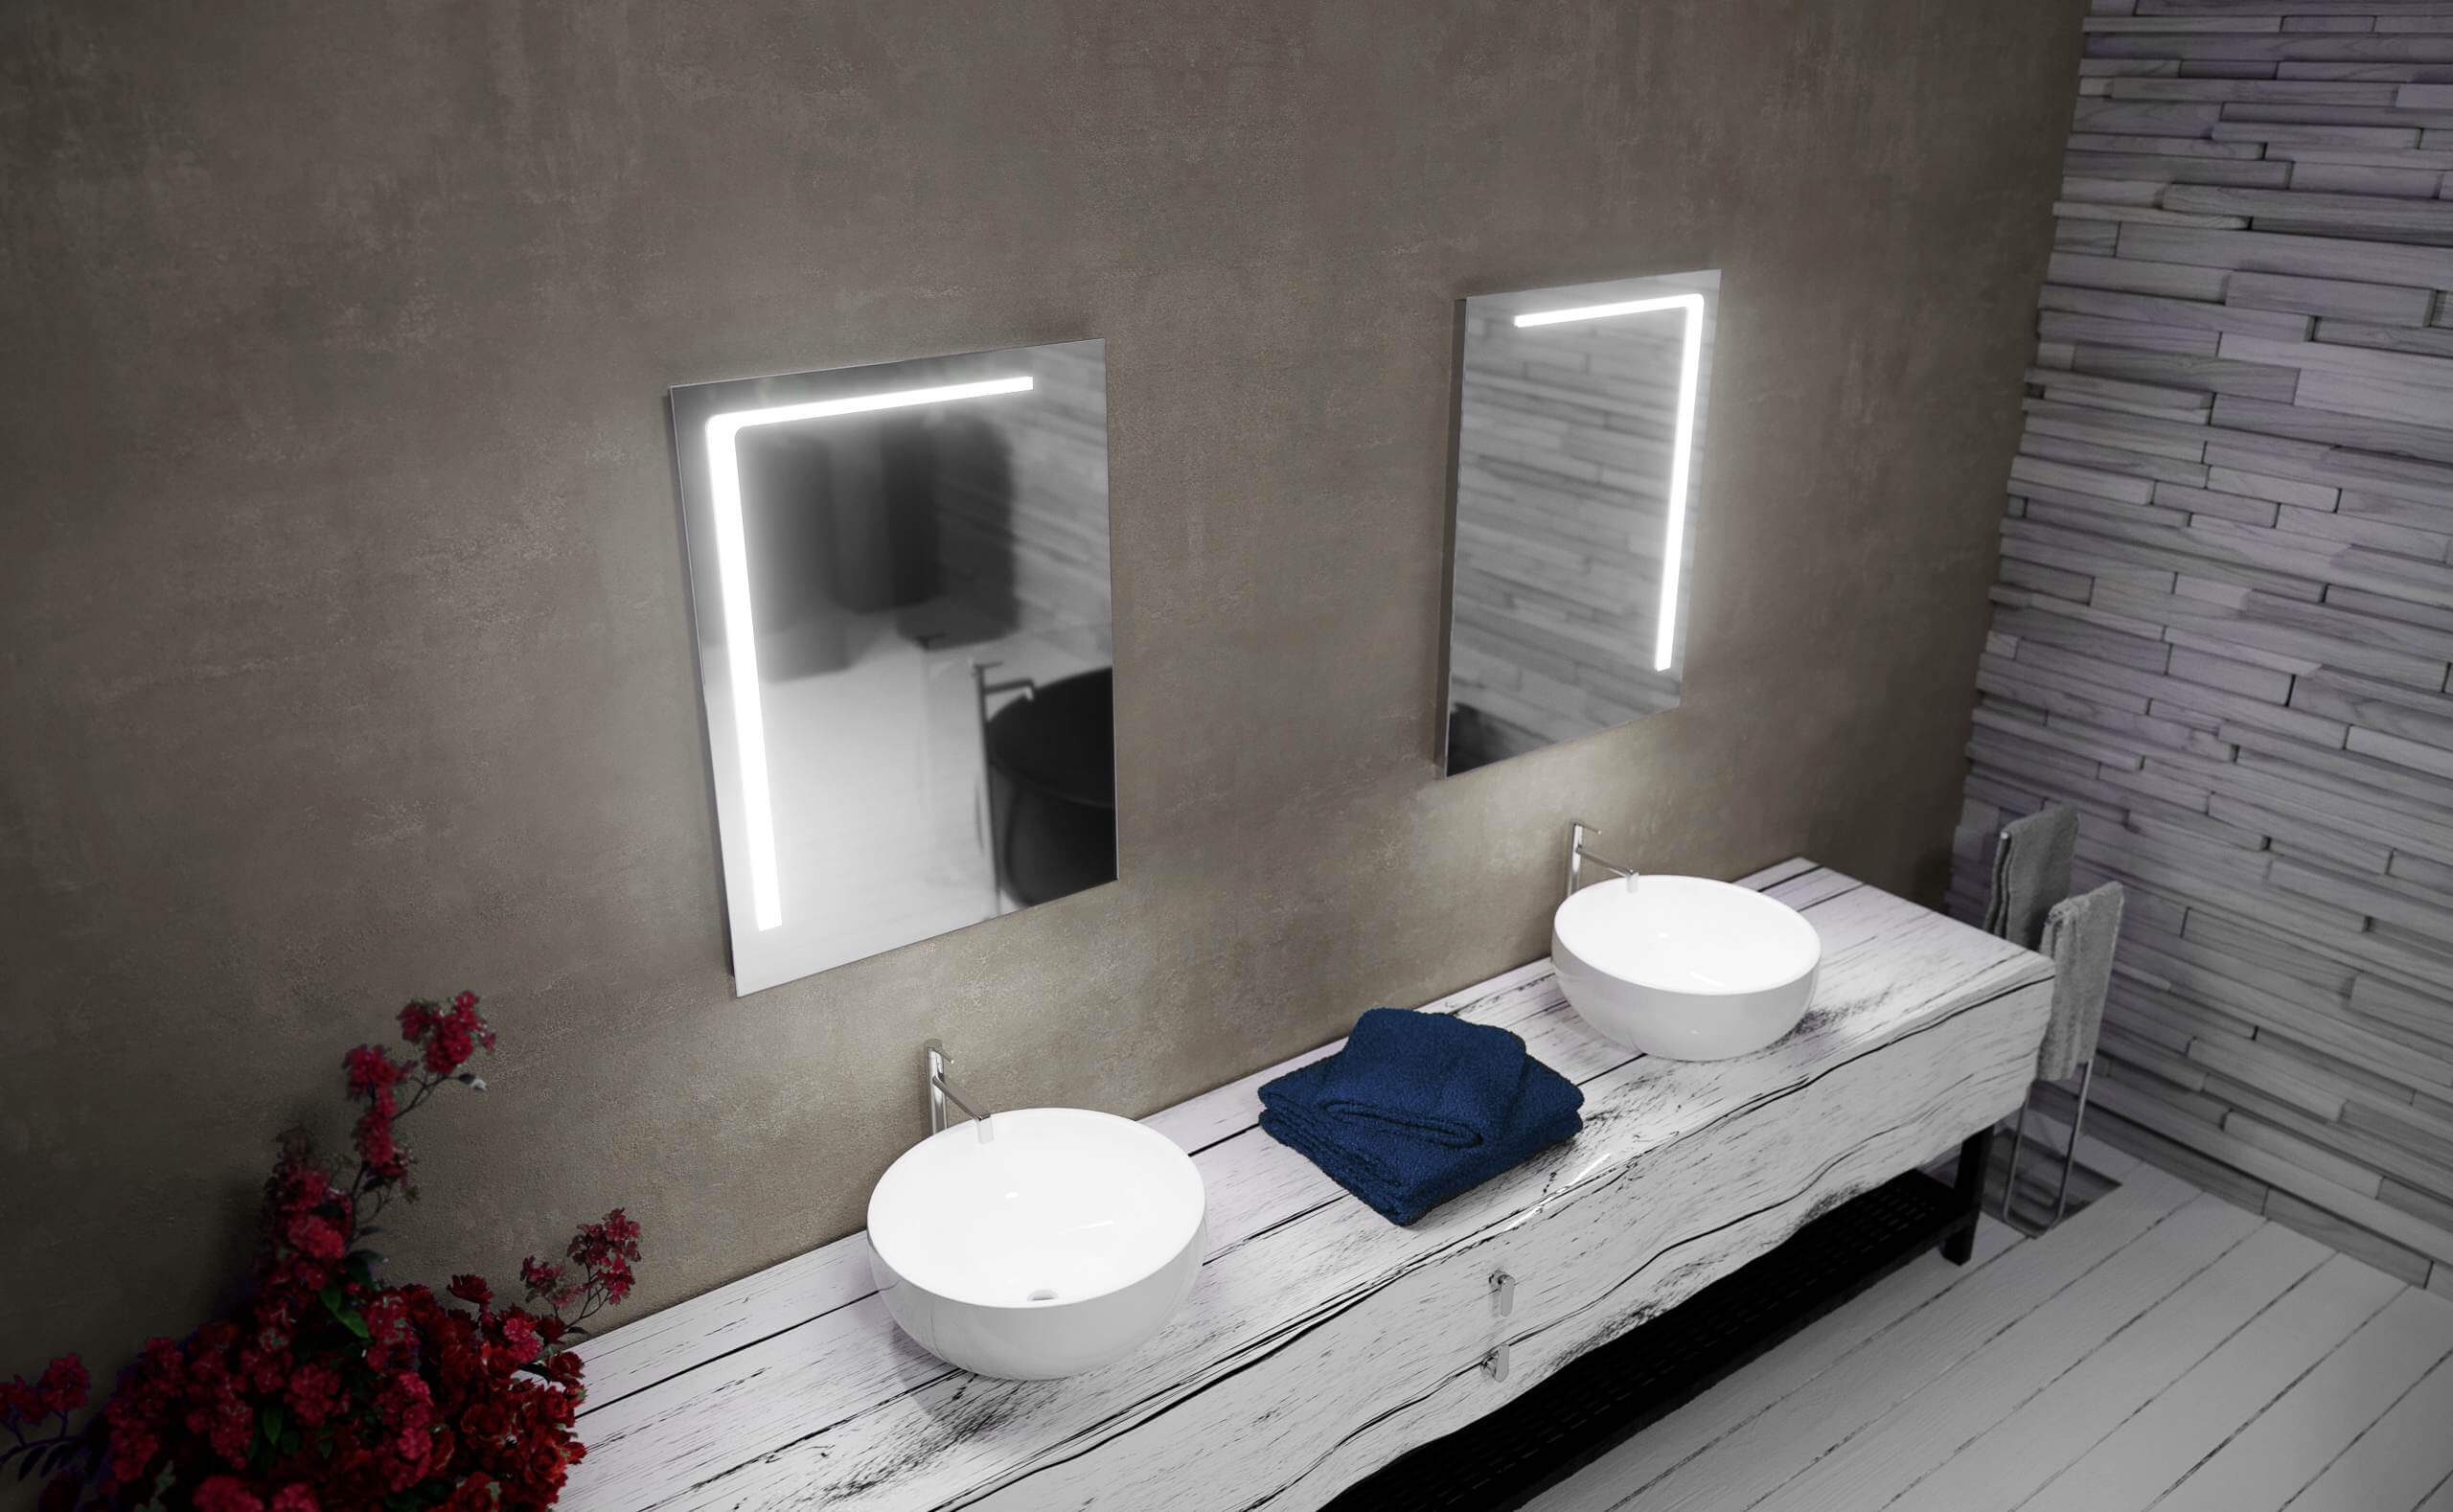 Mirrors for bathrooms available in Malta